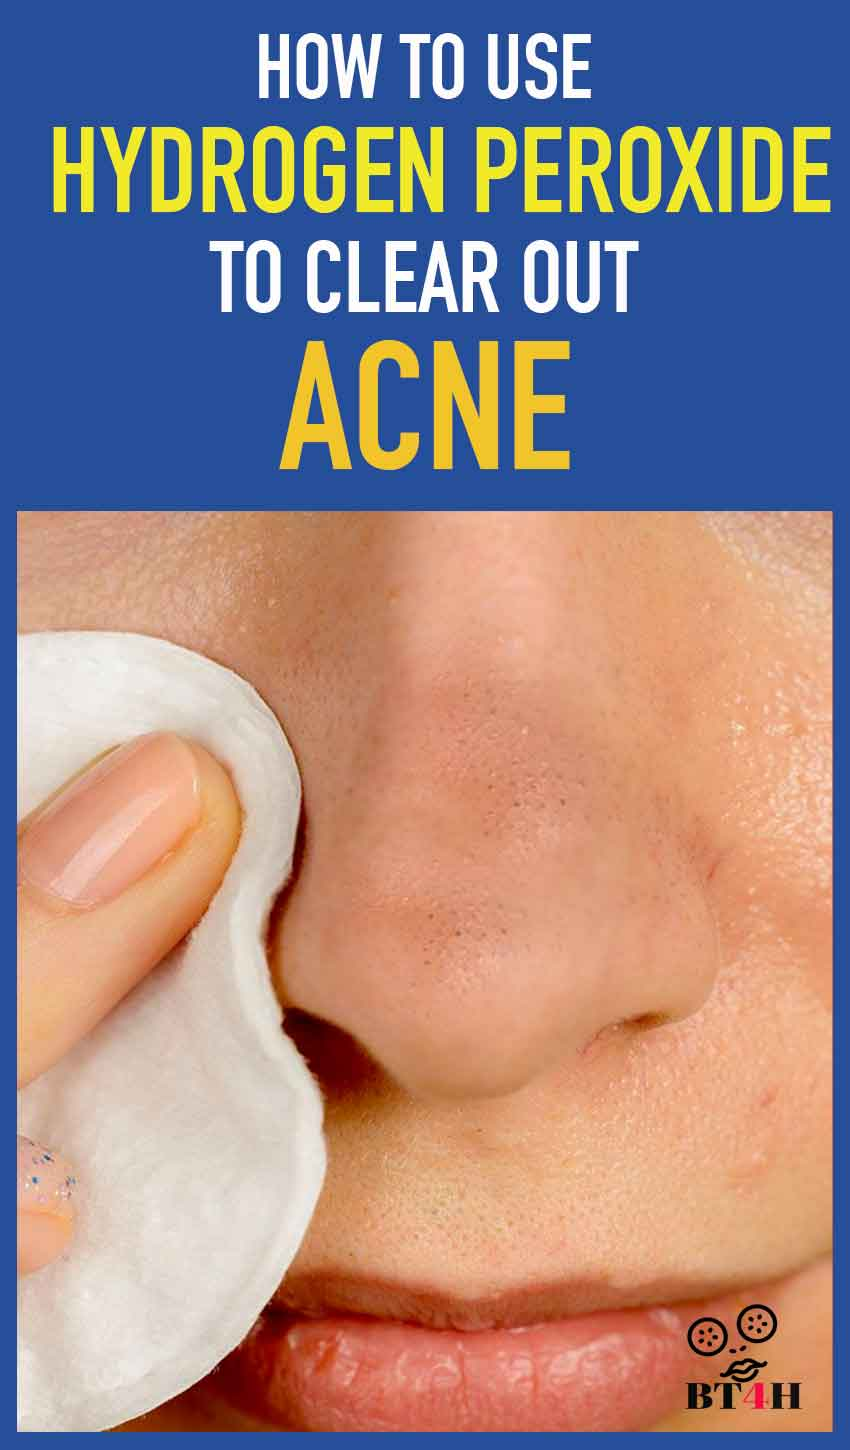 Hydrogen peroxide to clear acne - Several remedies can be used to make the redness and inflammation go away. Hydrogen peroxide is one of the best